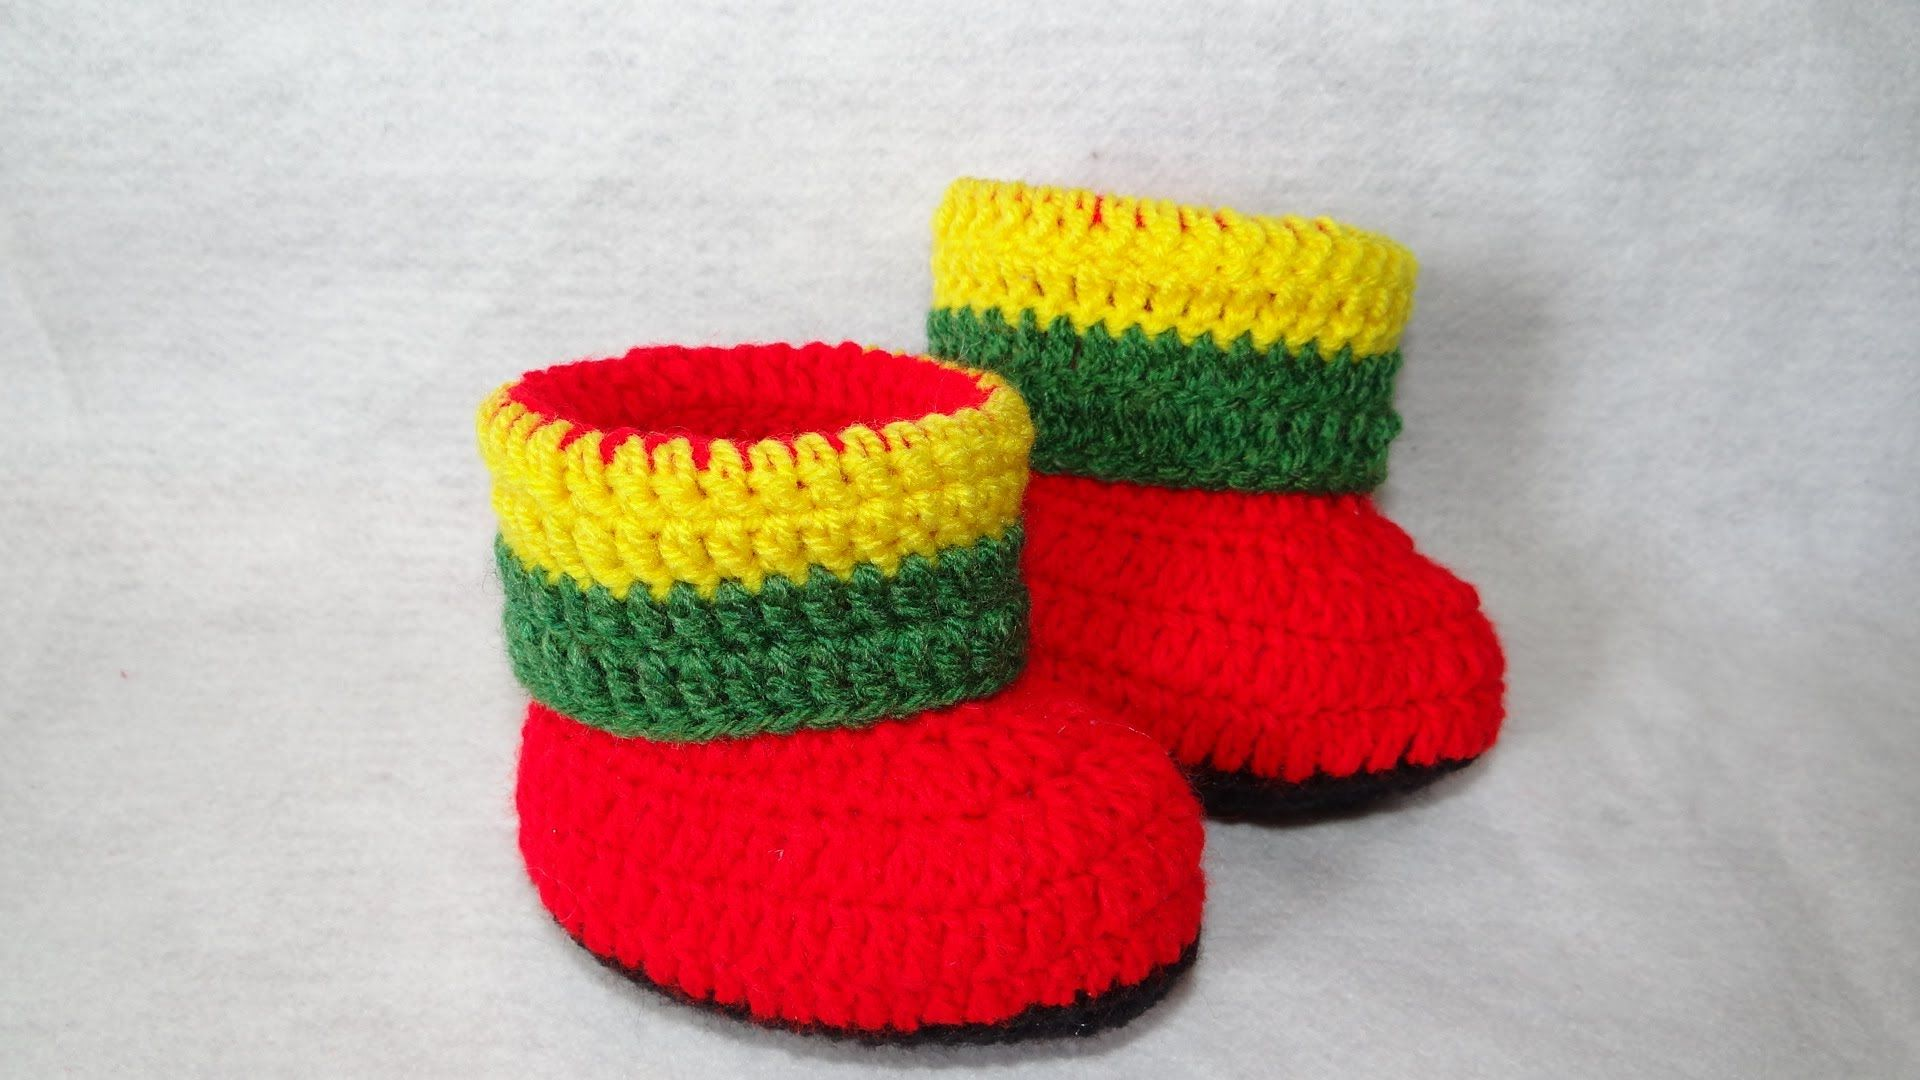 Ankle Jamaica in Crochet Part -1